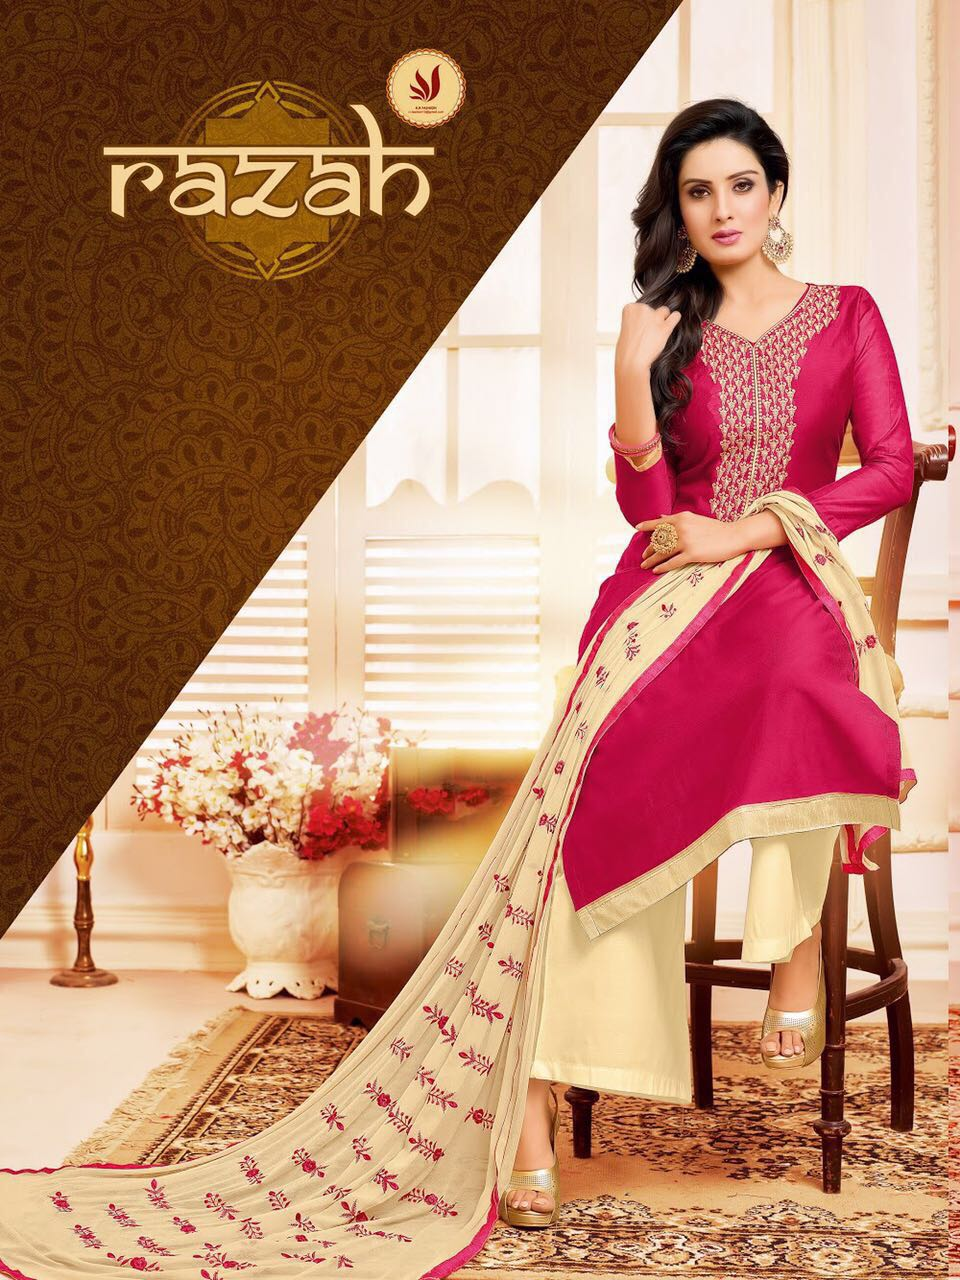 RAZAH-New Arrival Modal Silk Dress Material